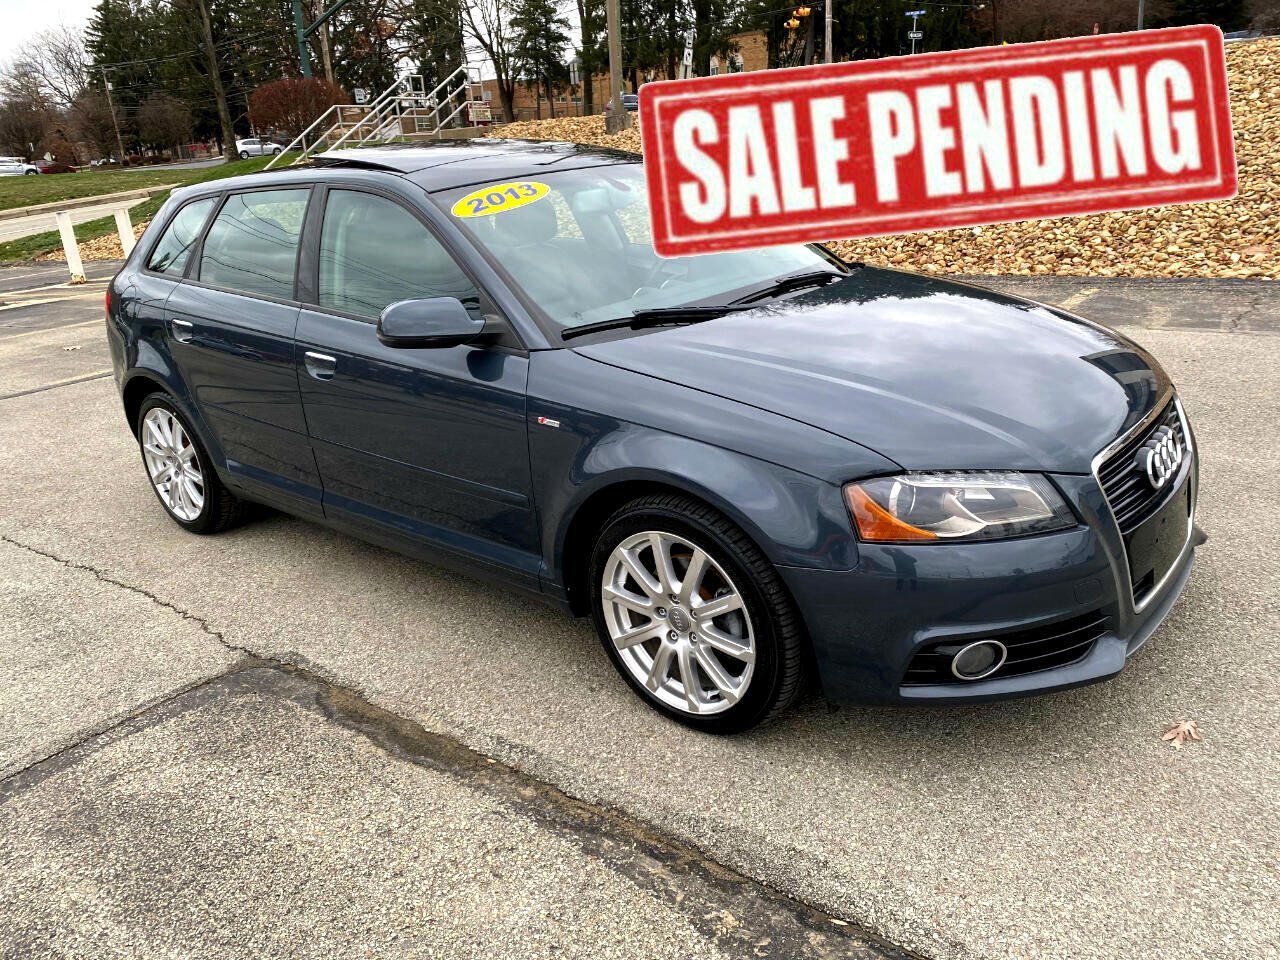 Audi A3 2.0 TDI Clean Diesel with S tronic 2013